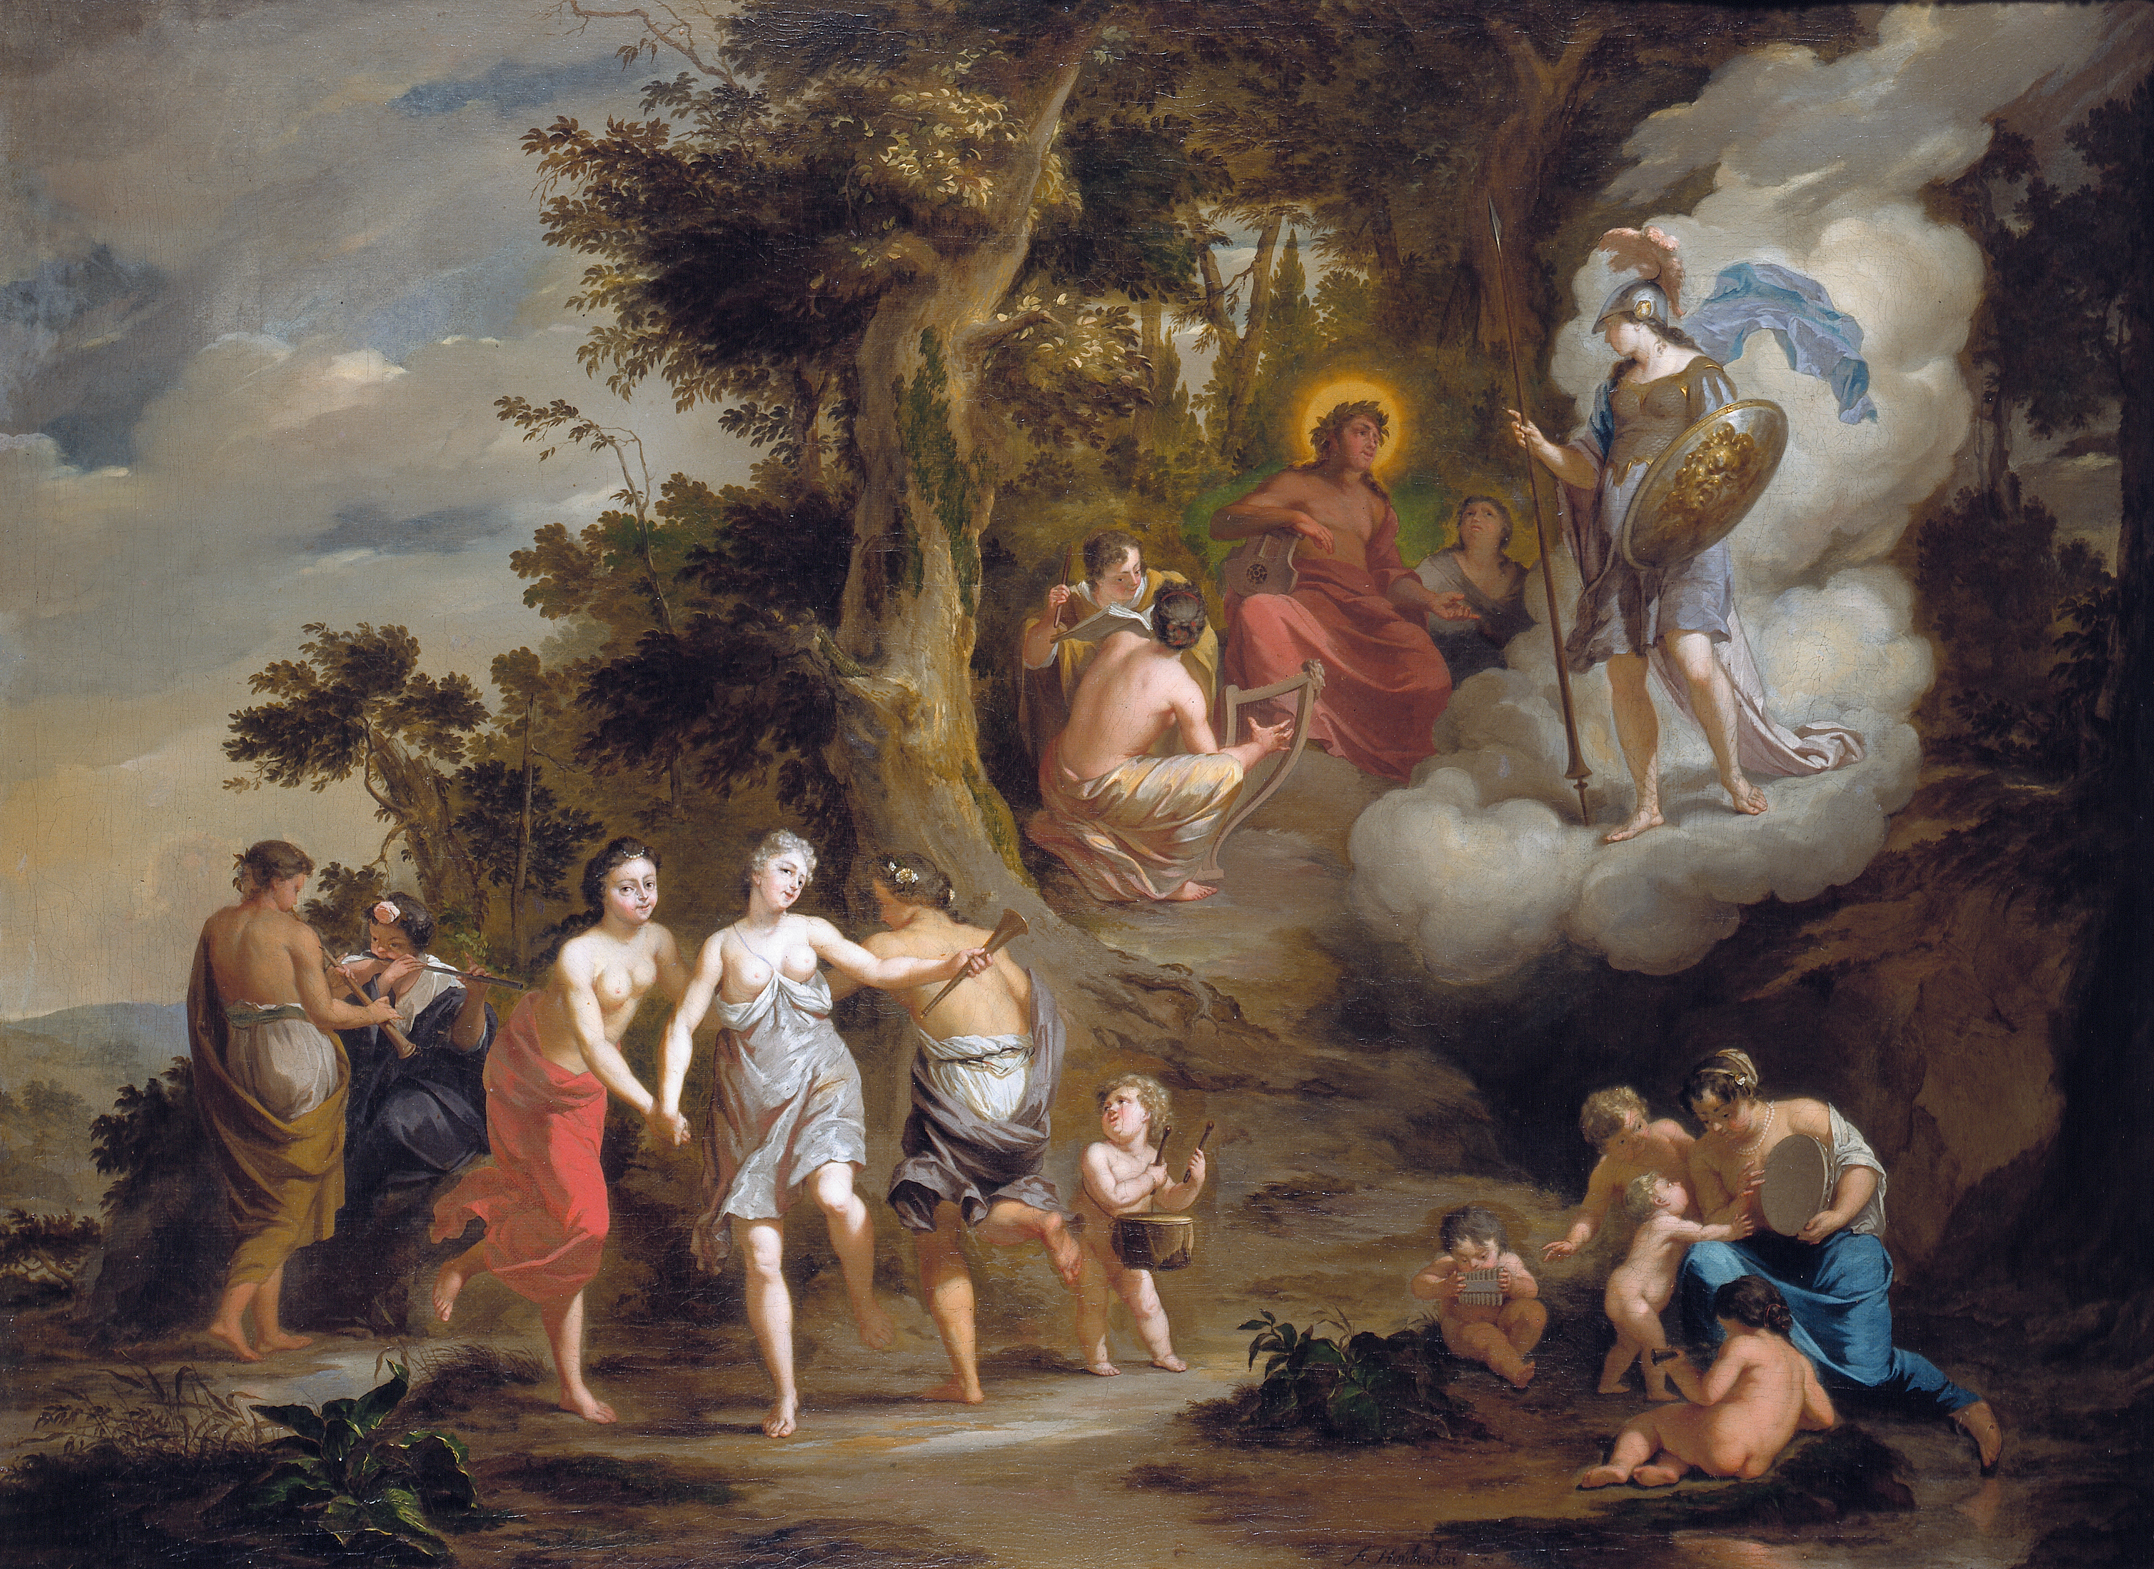 Clouds illustrate the spirit states of divinities of all kinds, to the extent that they bring their clouds with them when journeying to lower realms. Here Athena suggests to us her recent arrival from Mount Olympus when visiting Apollo, by trailing a cloud of glory.Arnold Houbraken  Pallas Athene Visiting Apollo on the Parnas